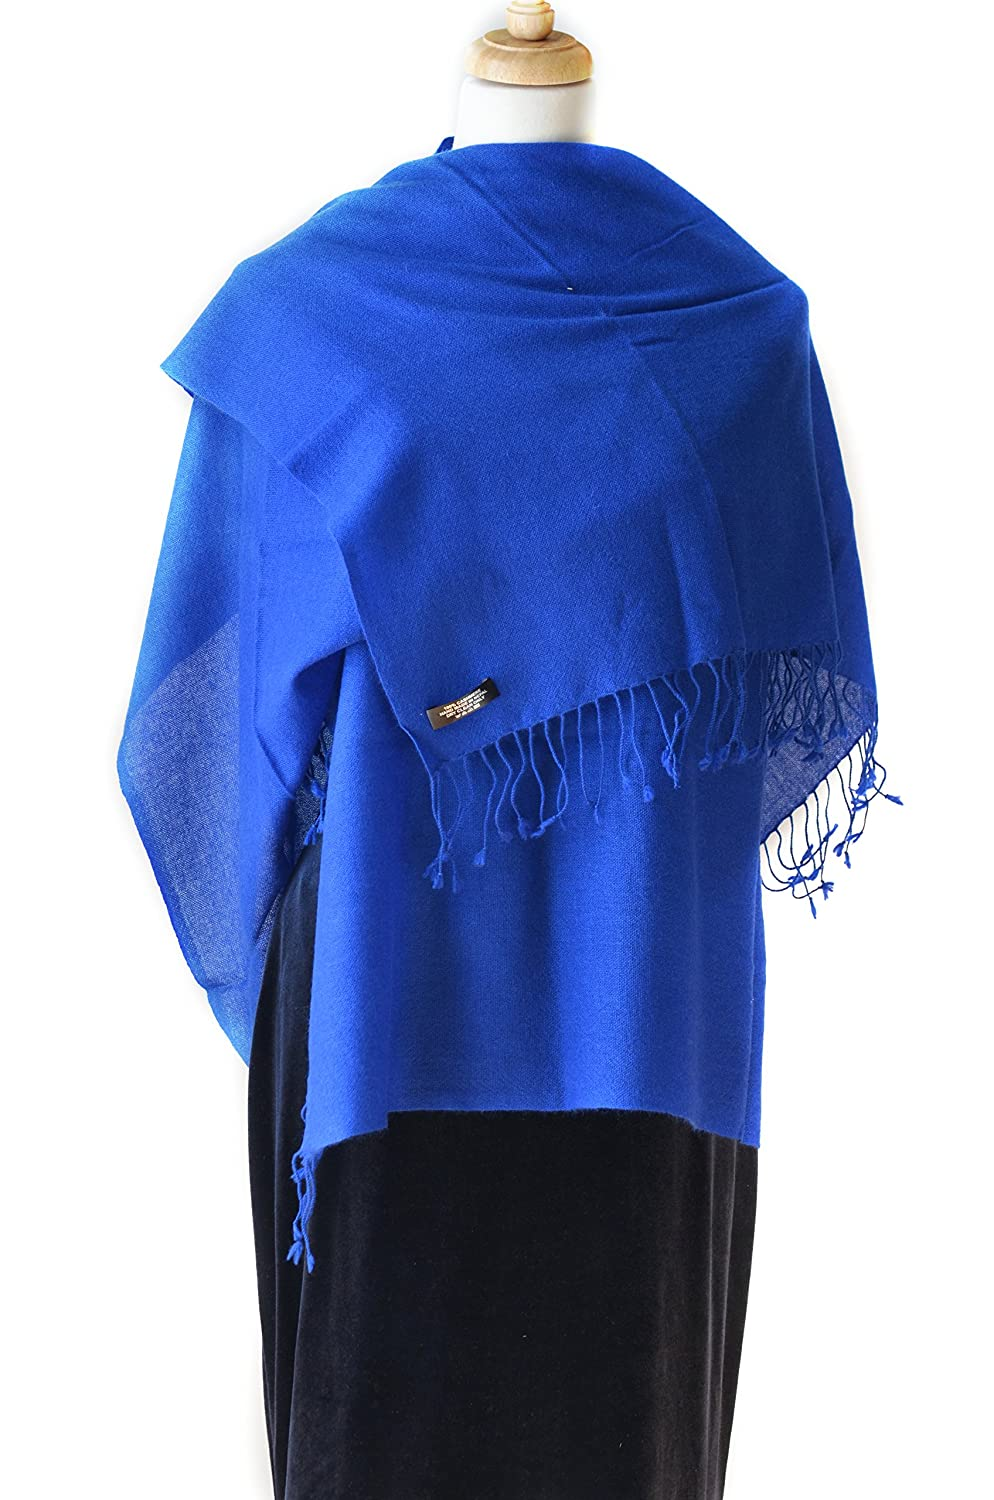 Emperial bluee Cashmere Shawl Scarf Handmade 100% Pure Lightweight Oversized